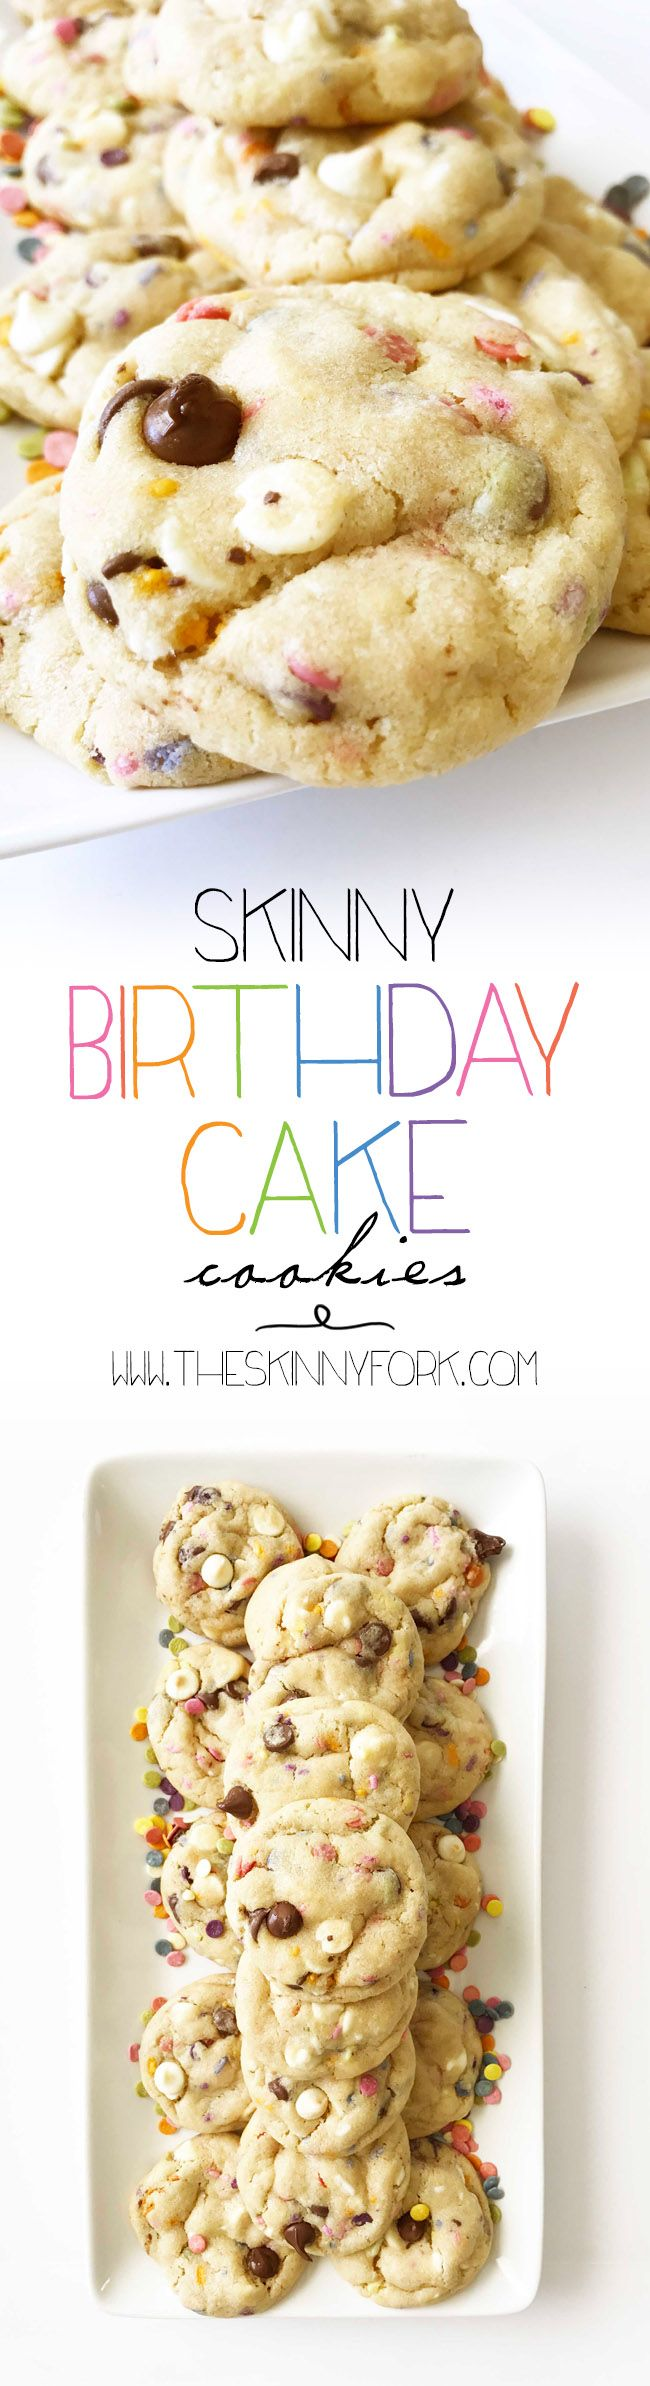 These Skinny Birthday Cake 'Cake Batter' Cookies are sure to steal the show at any party! Plus, they are better-for-you and made with NATURALLY colored sprinkles. TheSkinnyFork.com | Skinny & Healthy Recipes